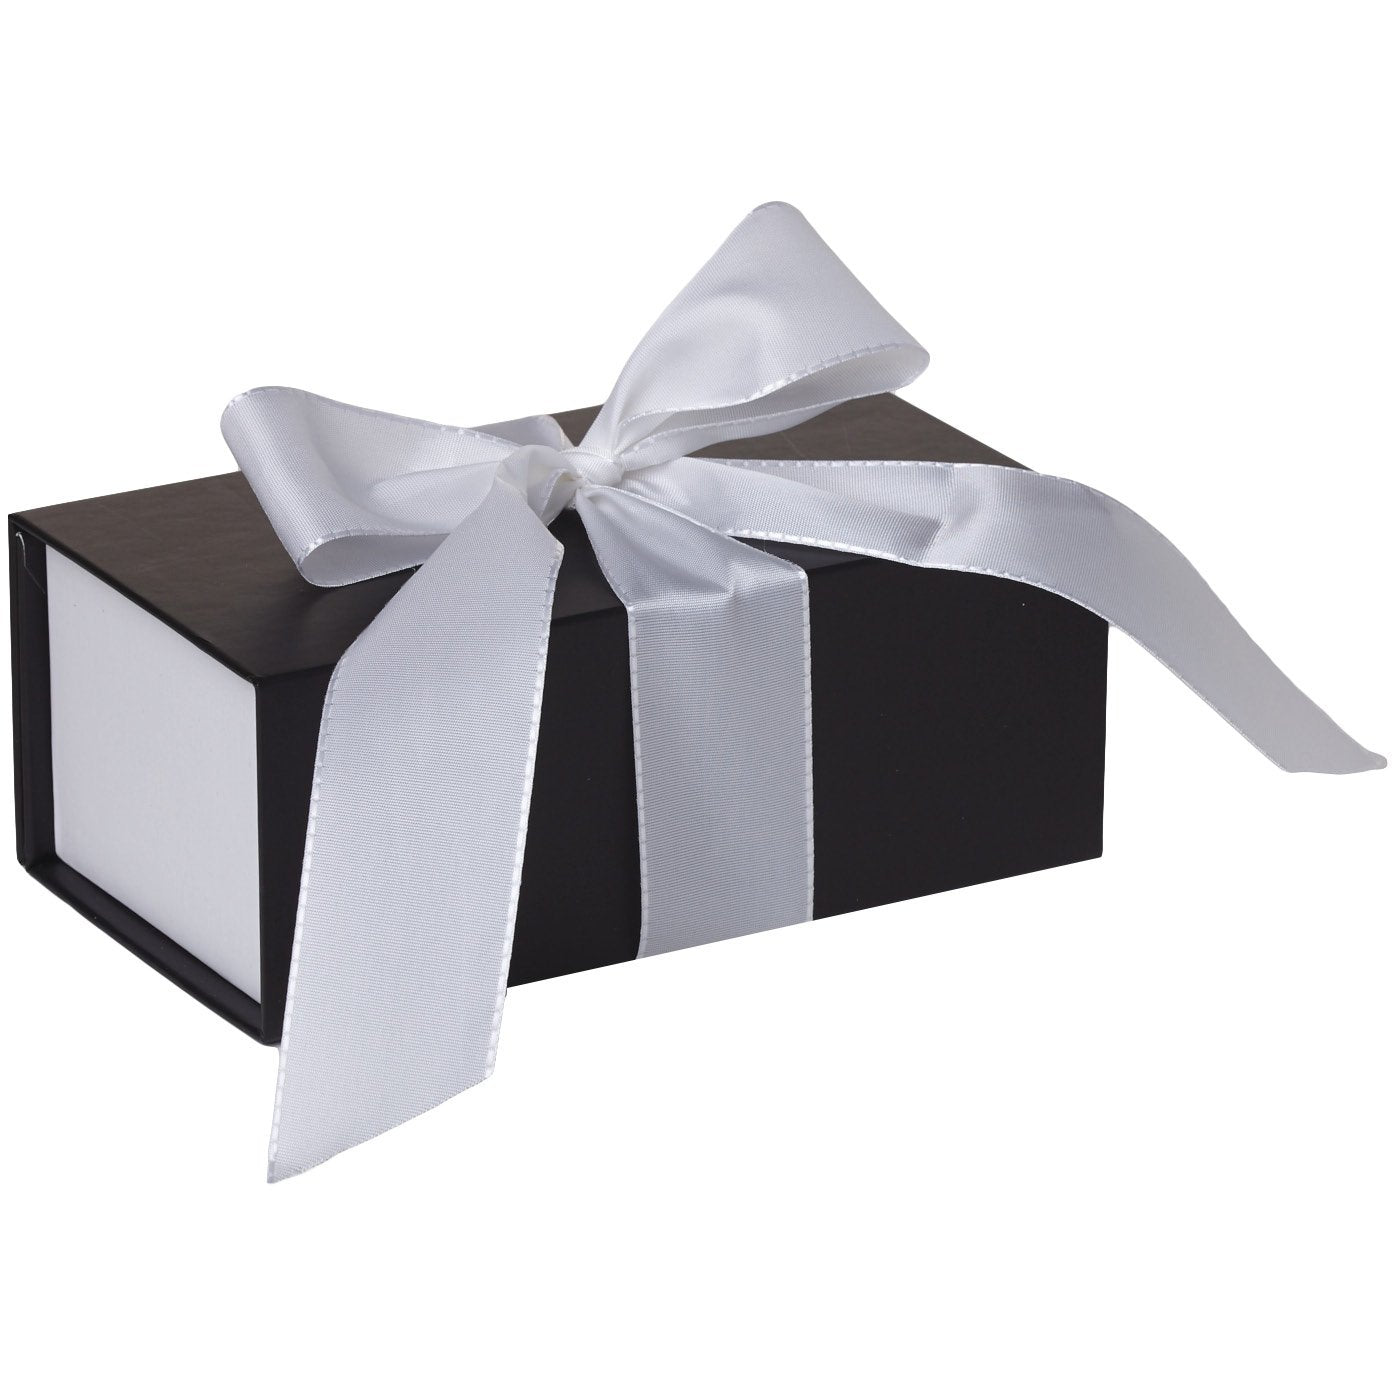 Jillson & Roberts Small Gift Box with Ribbon Tie, Sophisticate Black Matte (12 Pcs)